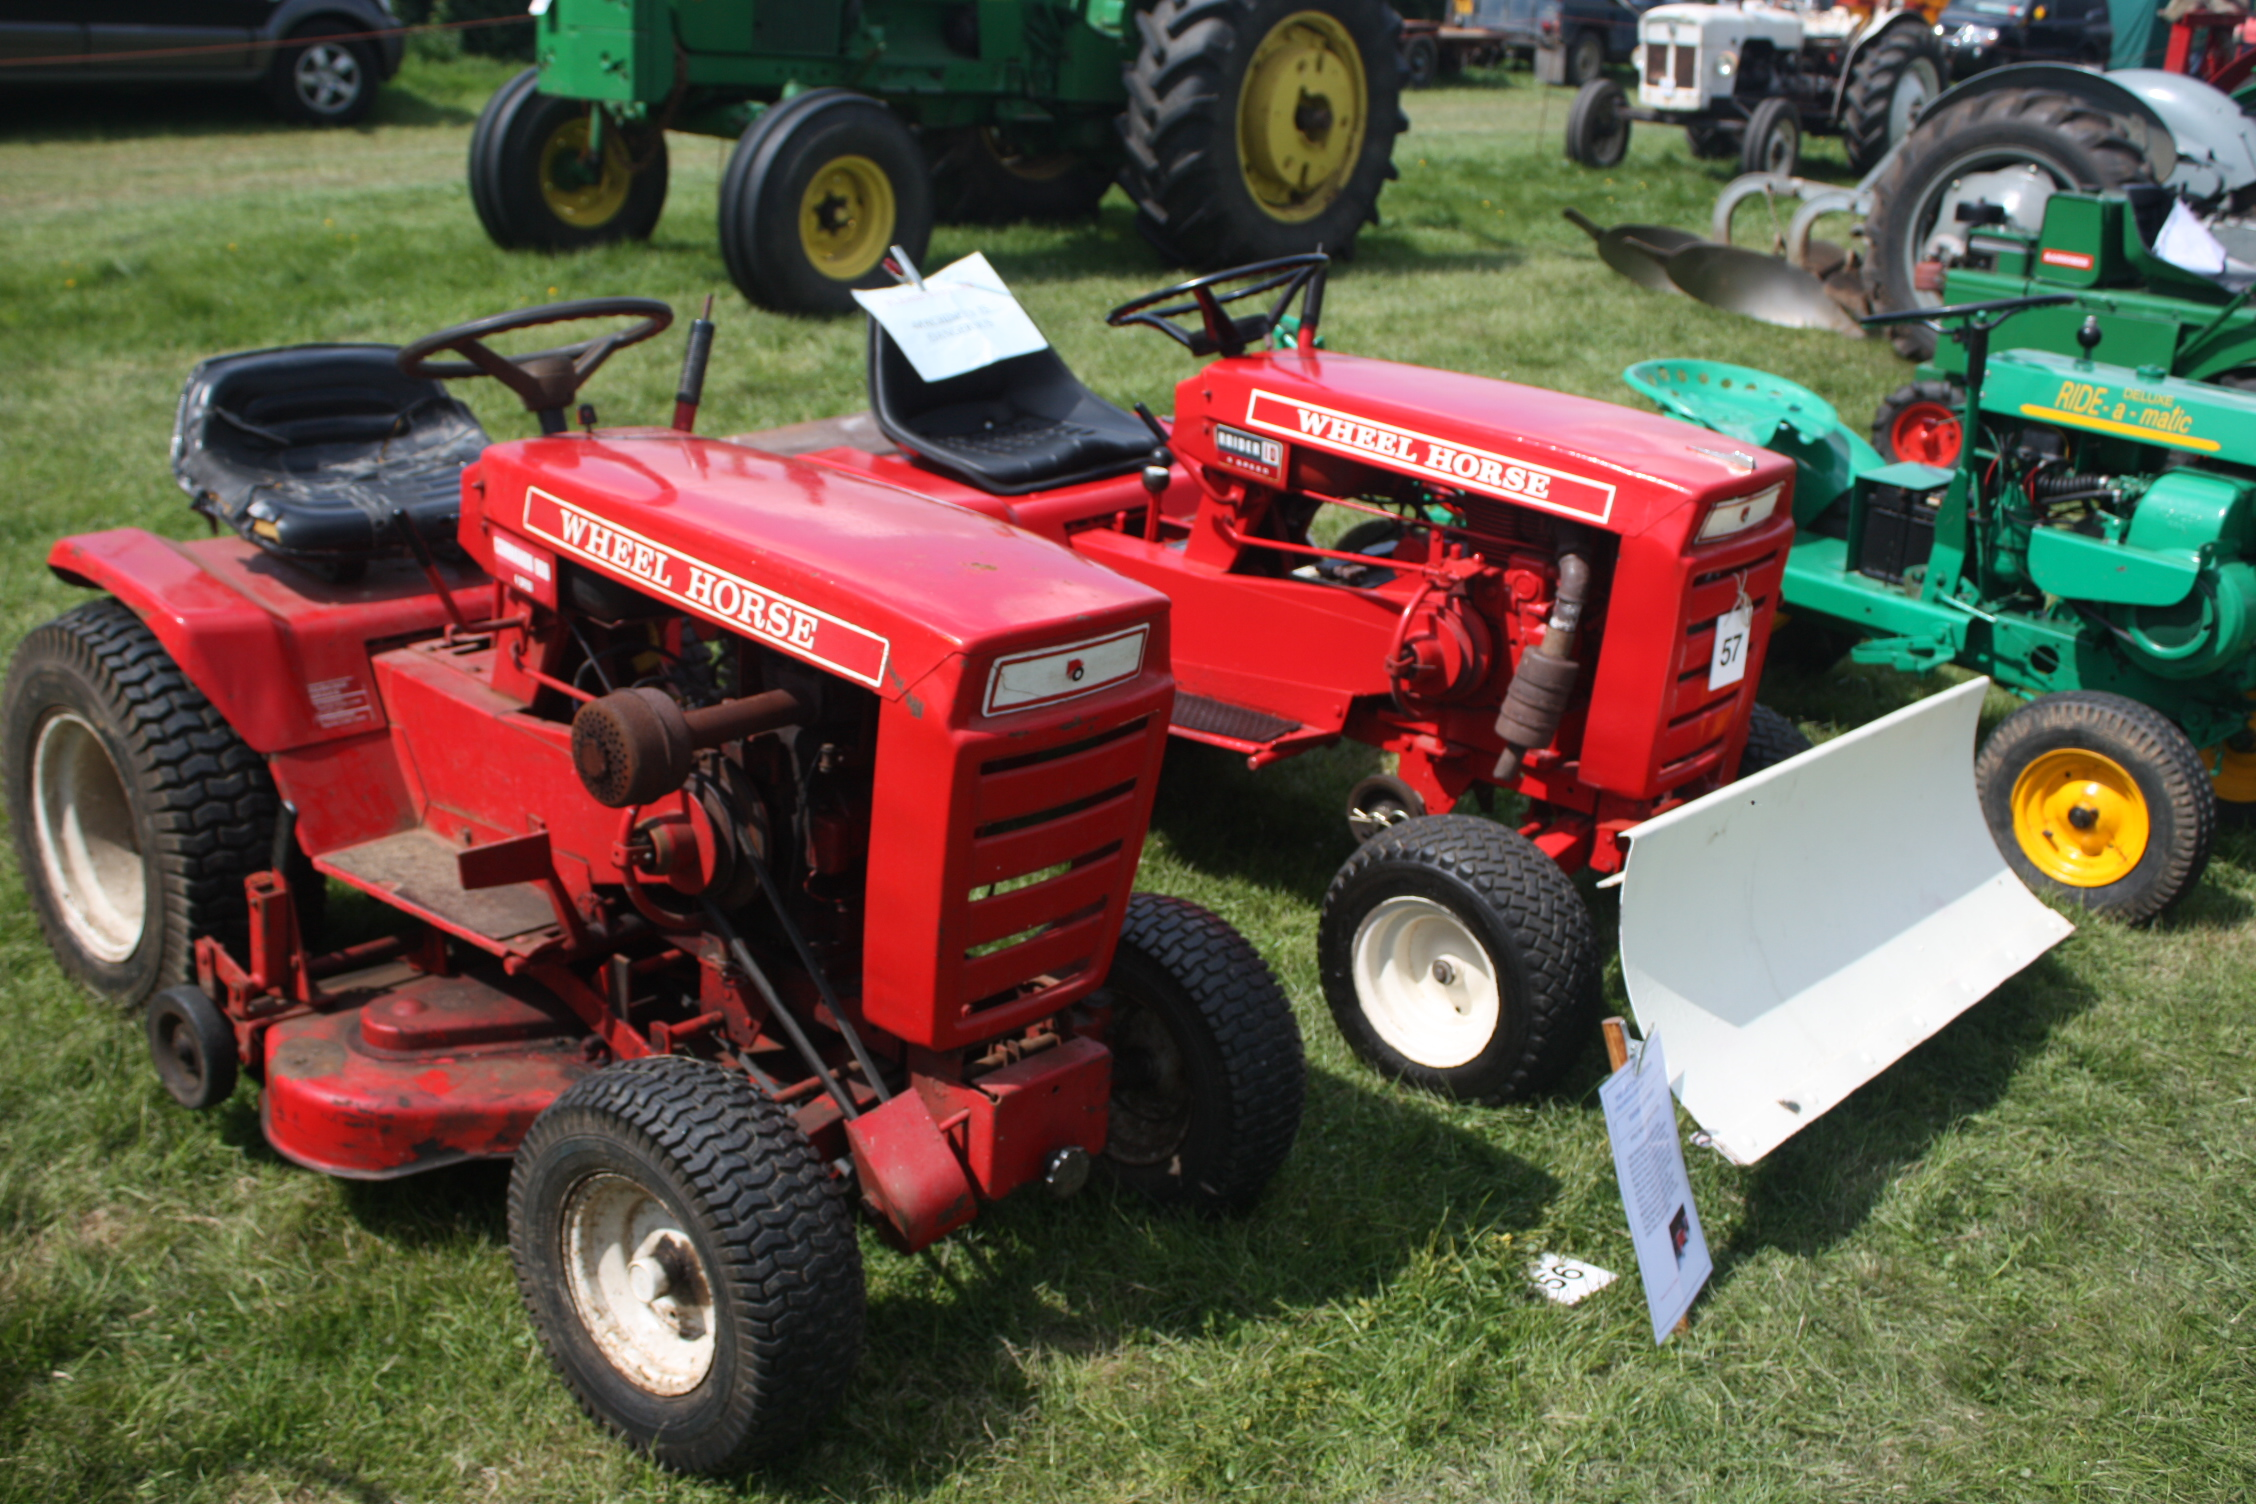 Wheel Horse 314 Wiring Harness Trusted Diagram Construction Tractors Tractor Plant Wiki Fandom Sign